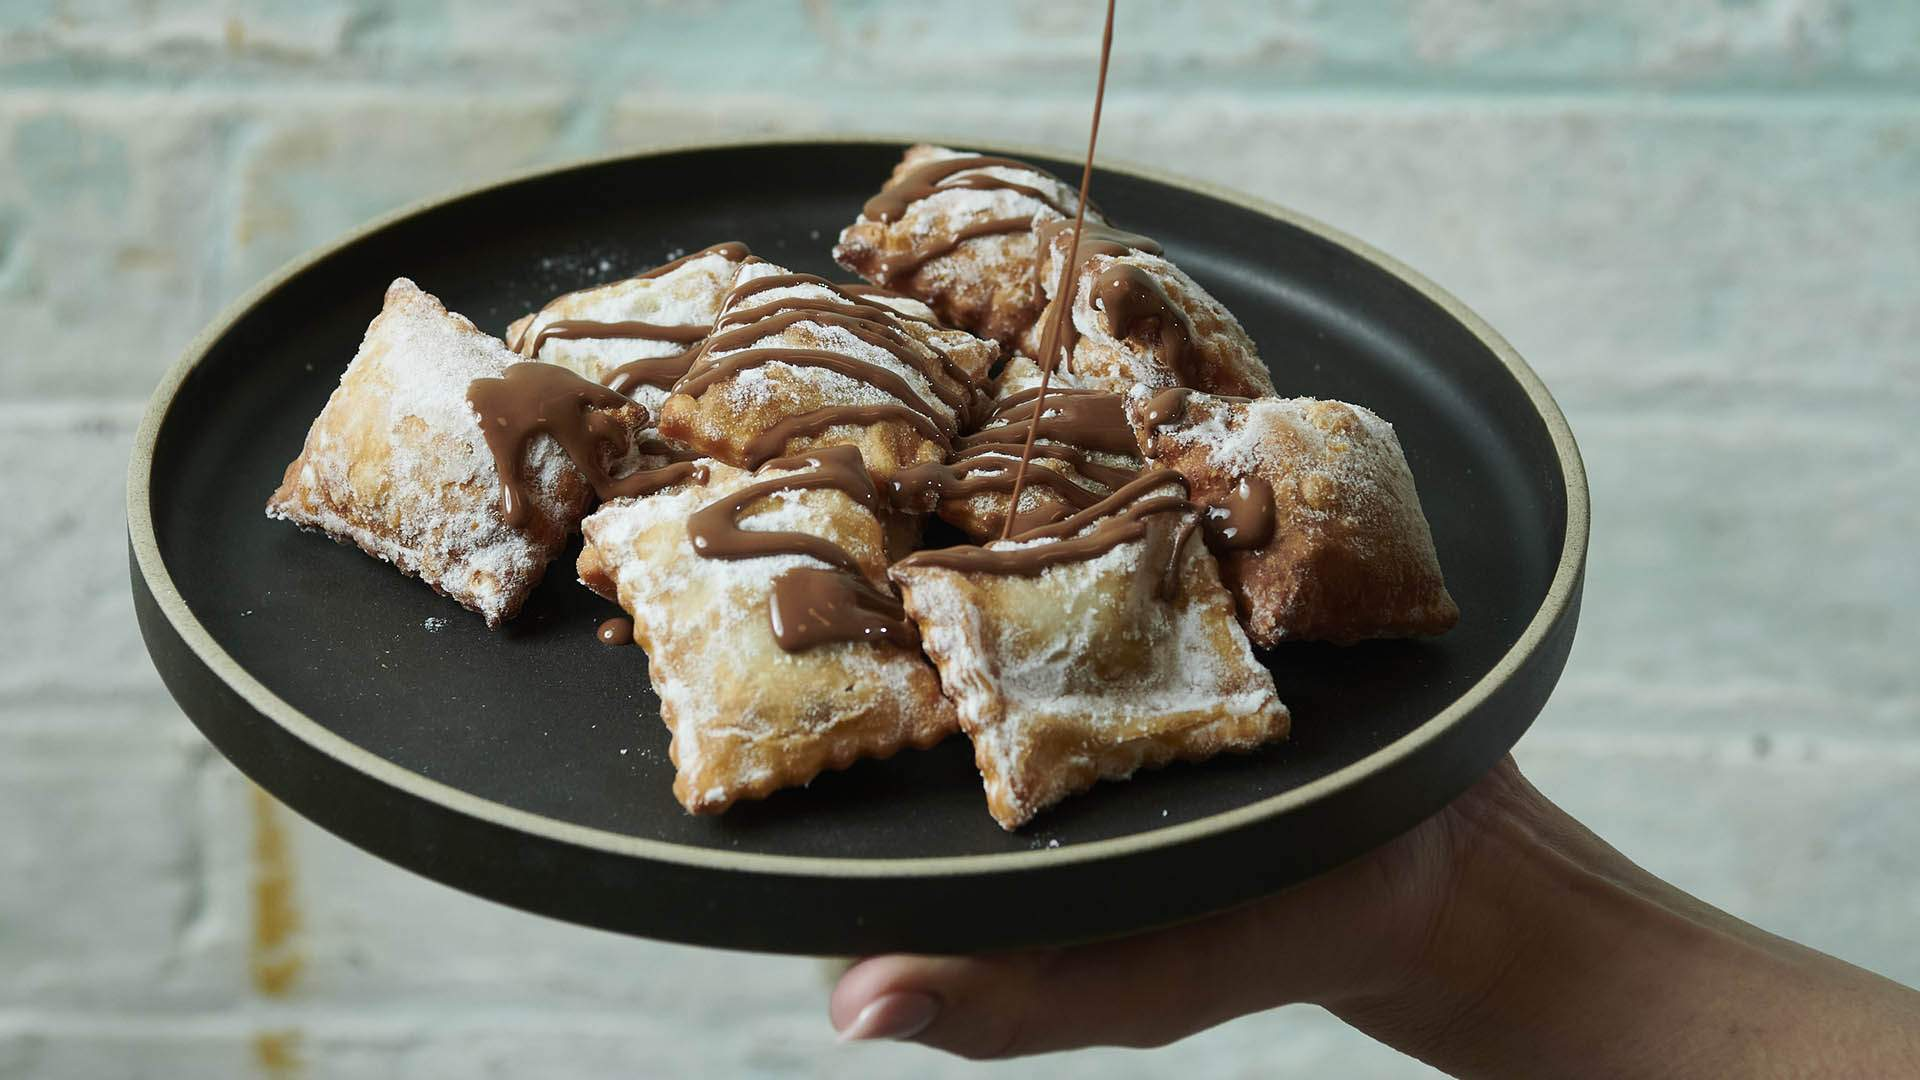 Piccolina Is Now Selling Nutella Ravioli, Cookie Dough and Puddings That You Can Bake at Home